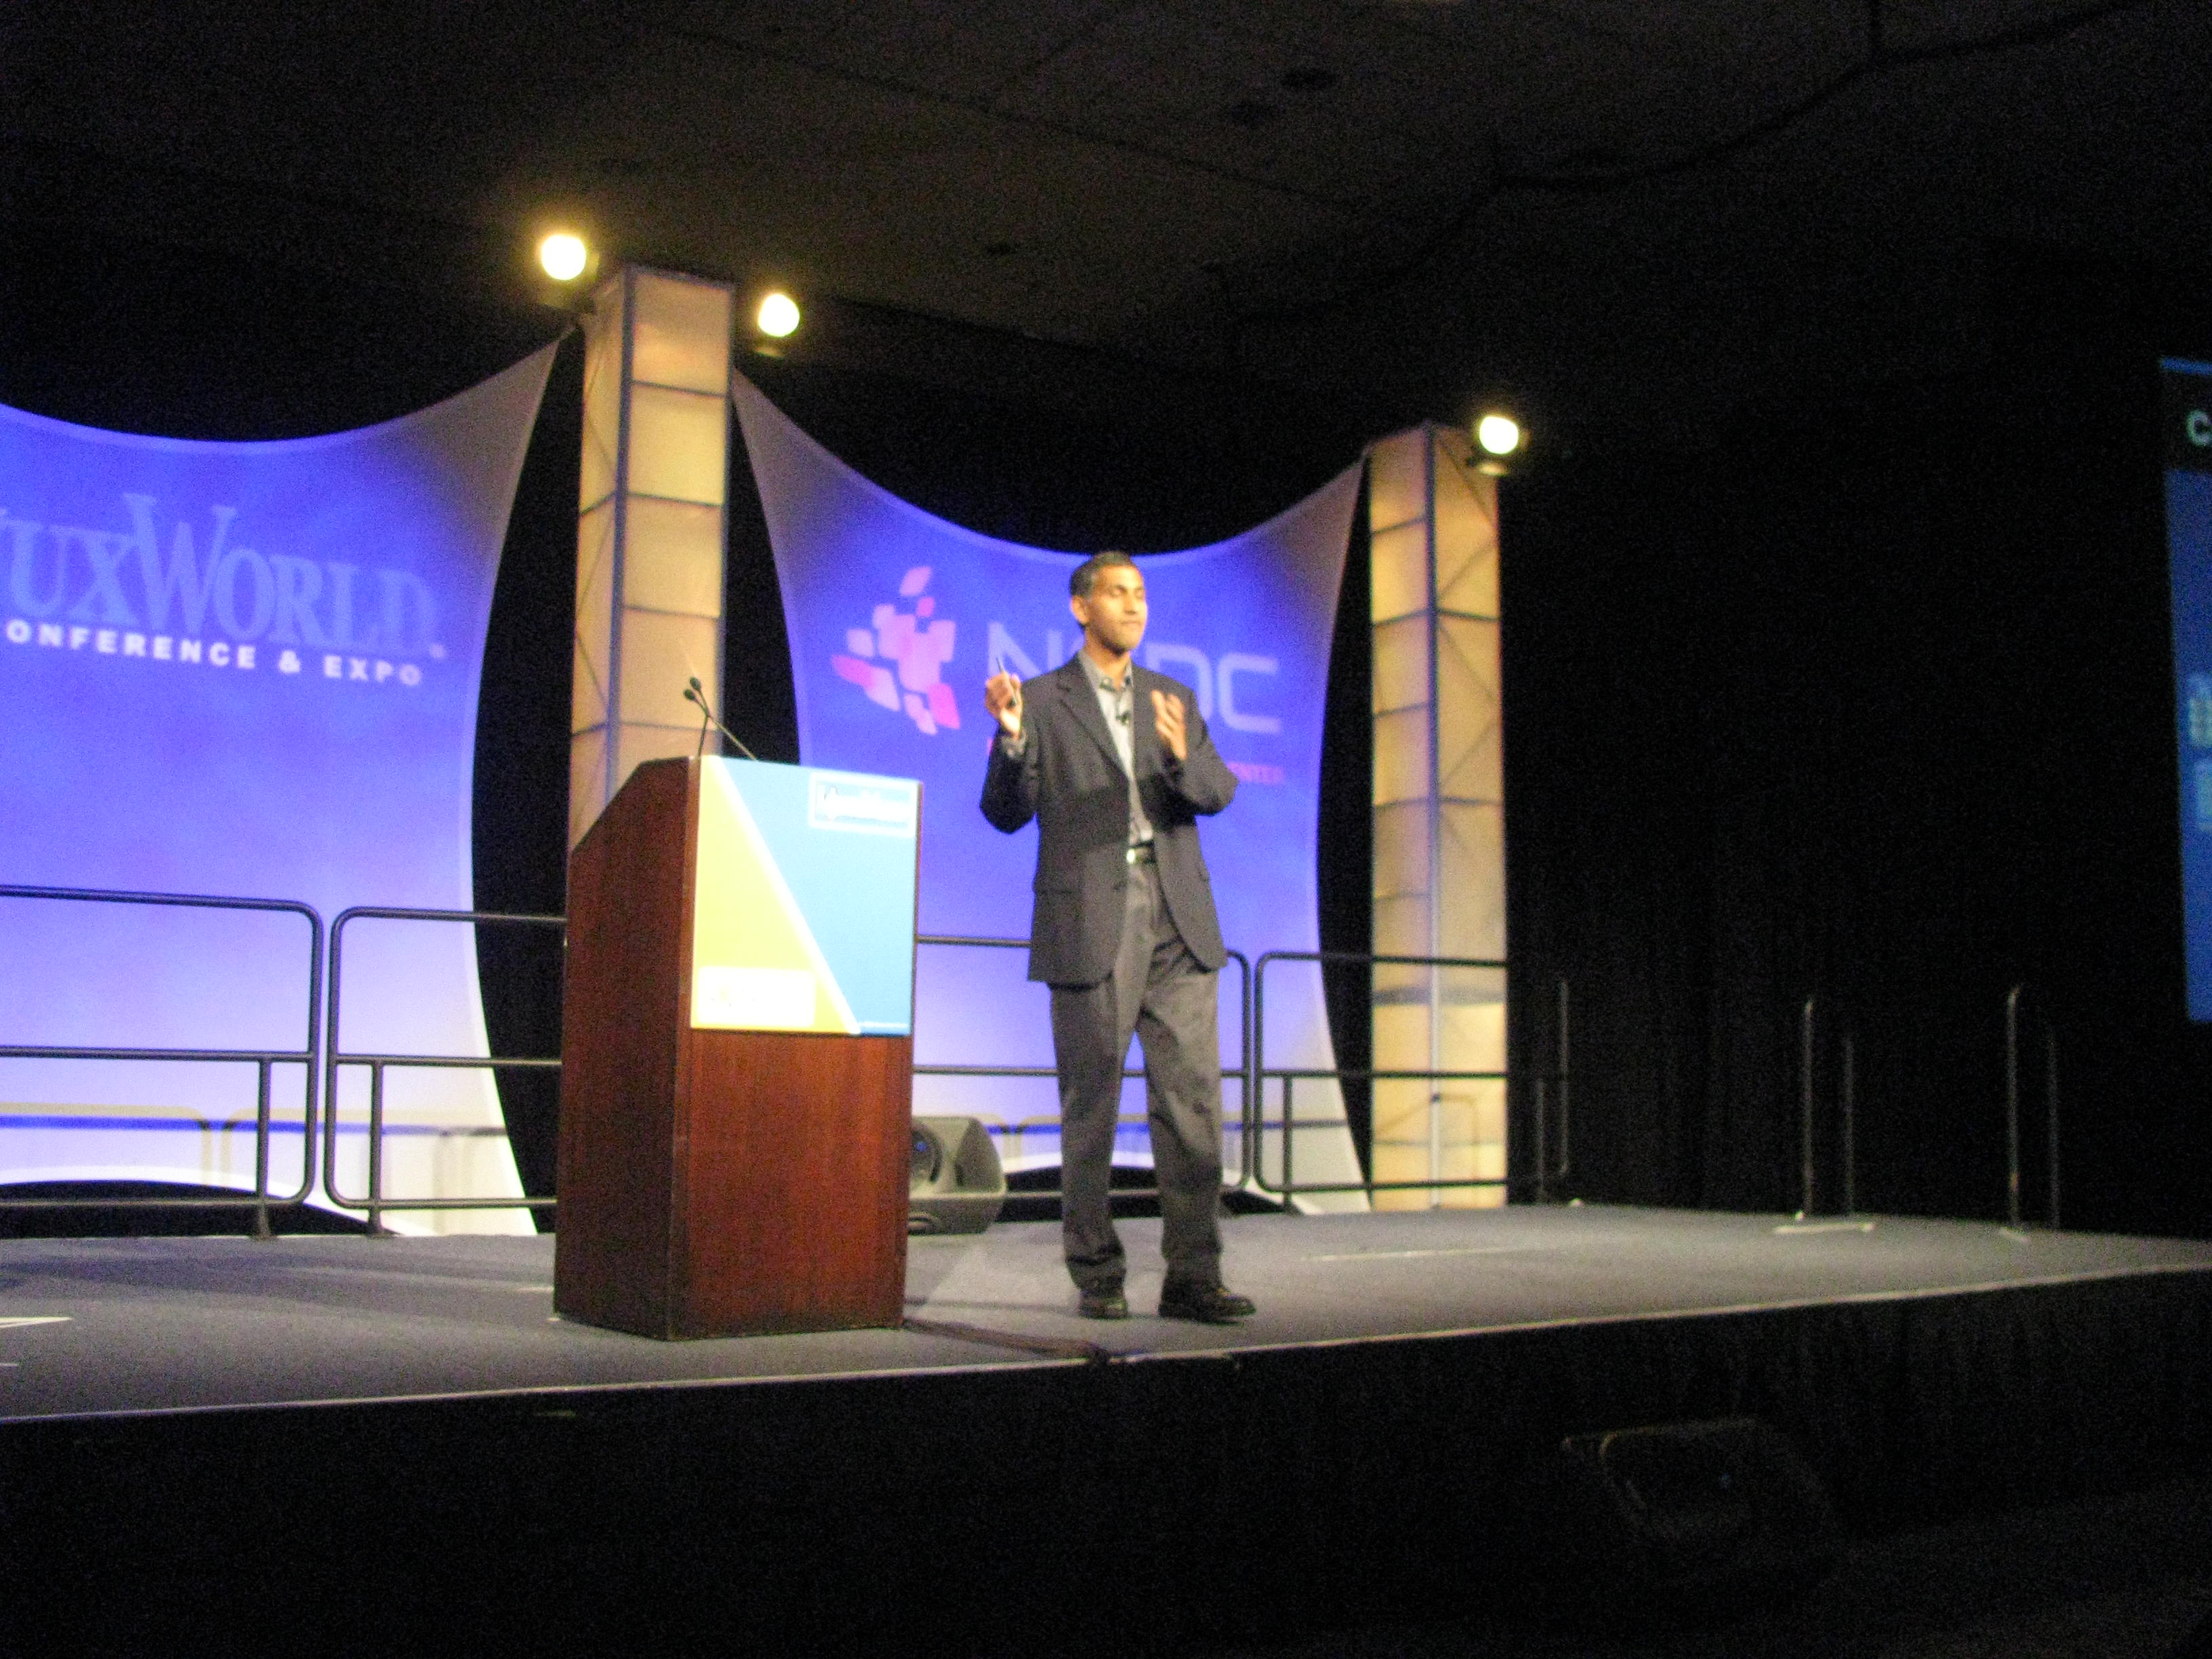 Rajiv Ramaswami, the vice president and general manager of Cisco Systems